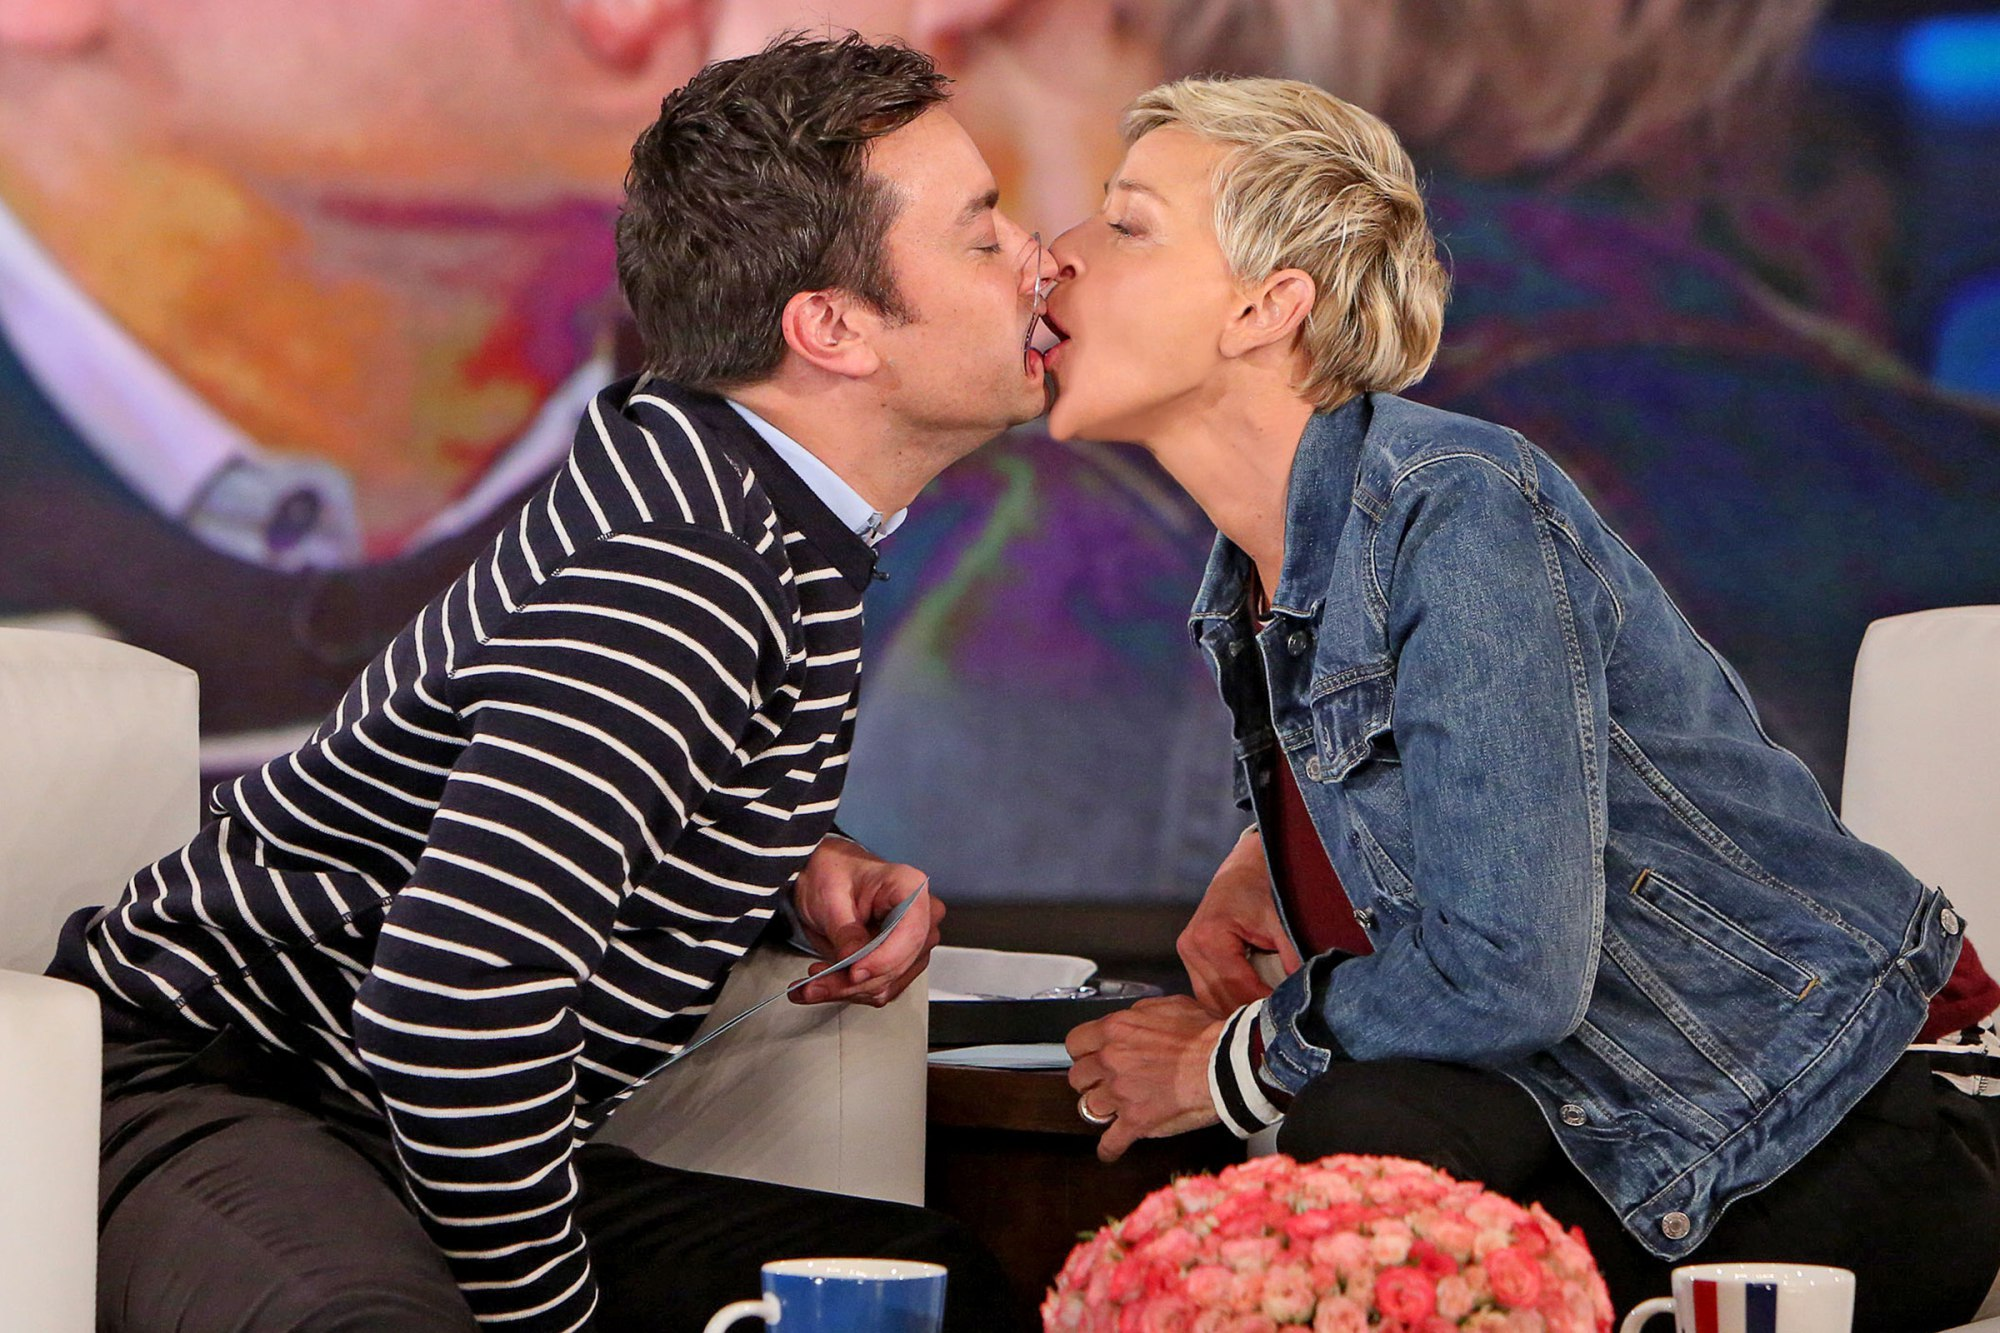 Jimmy Fallon on Ellen DeGeneres